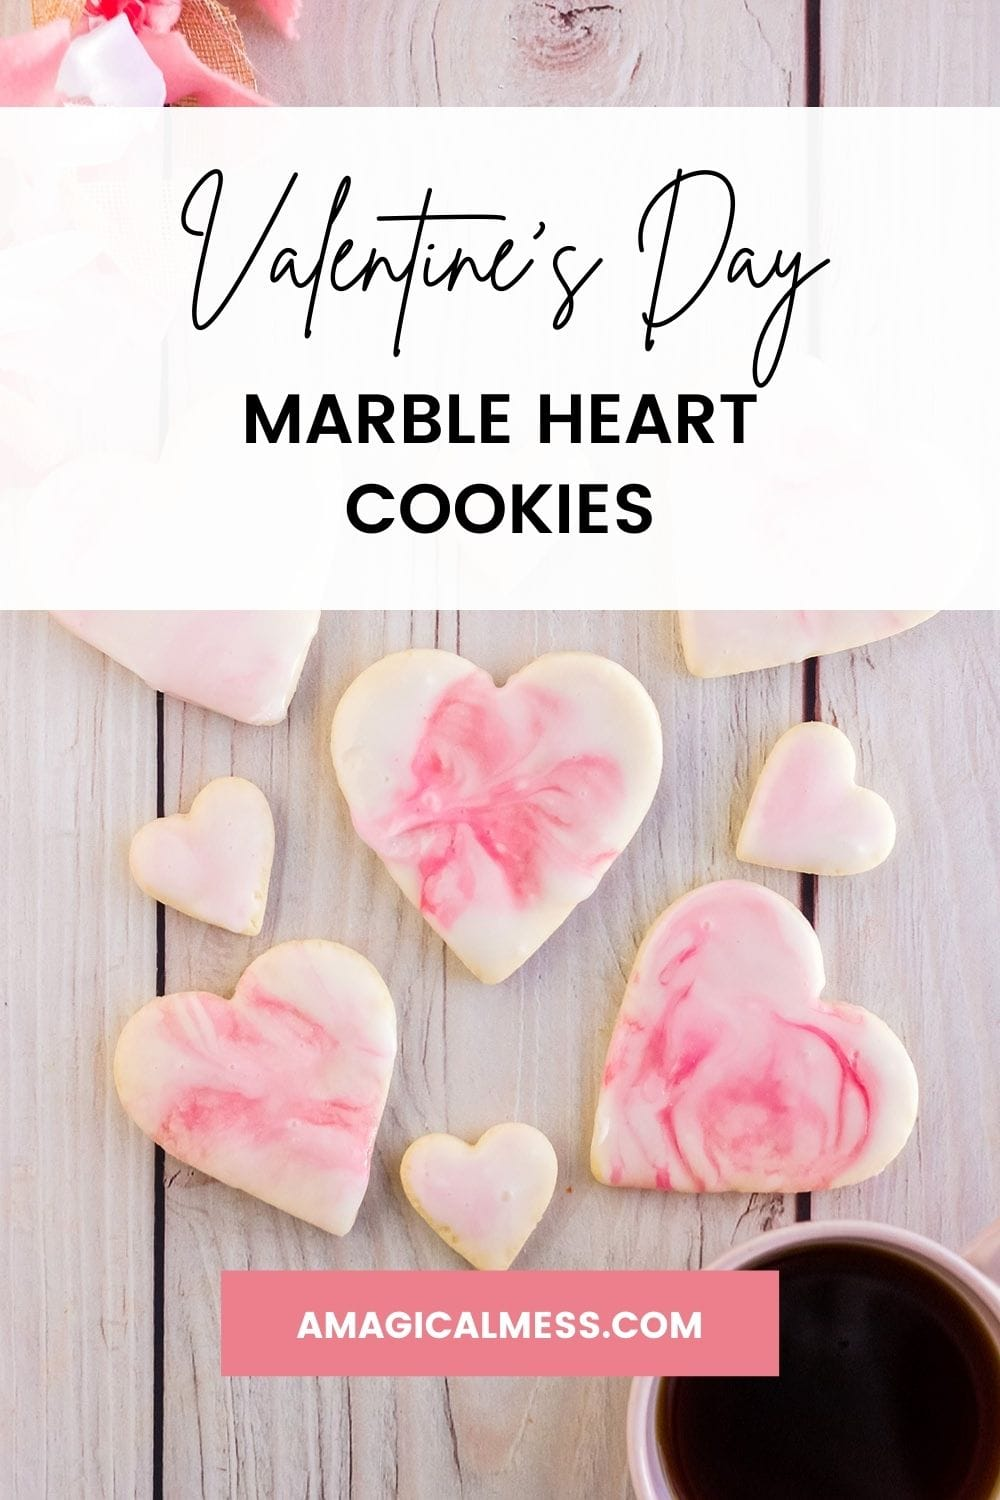 Heart cookies with pink marble icing.